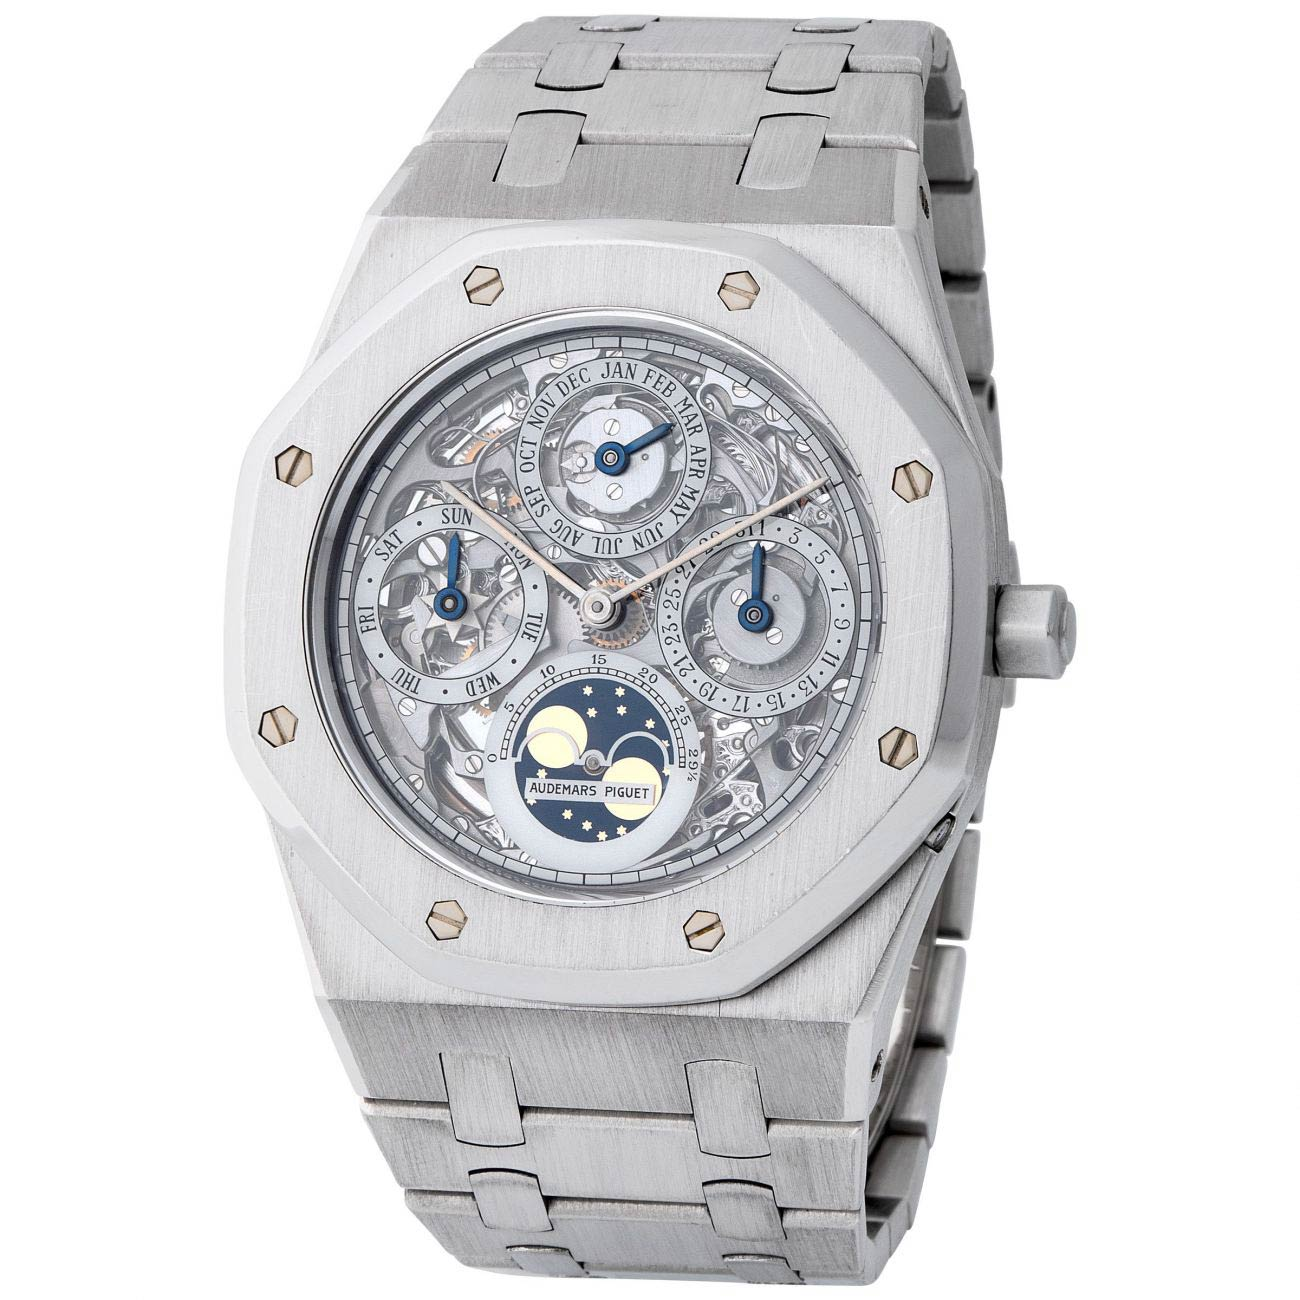 Lot 280 Audemars Piguet: Astonishing, Precious Early Royal Oak Quantieme Perpetuel Automatic Wristwatch in Platinum, Reference 25636pt, With Skeletonized Dial and Extract from the Archives